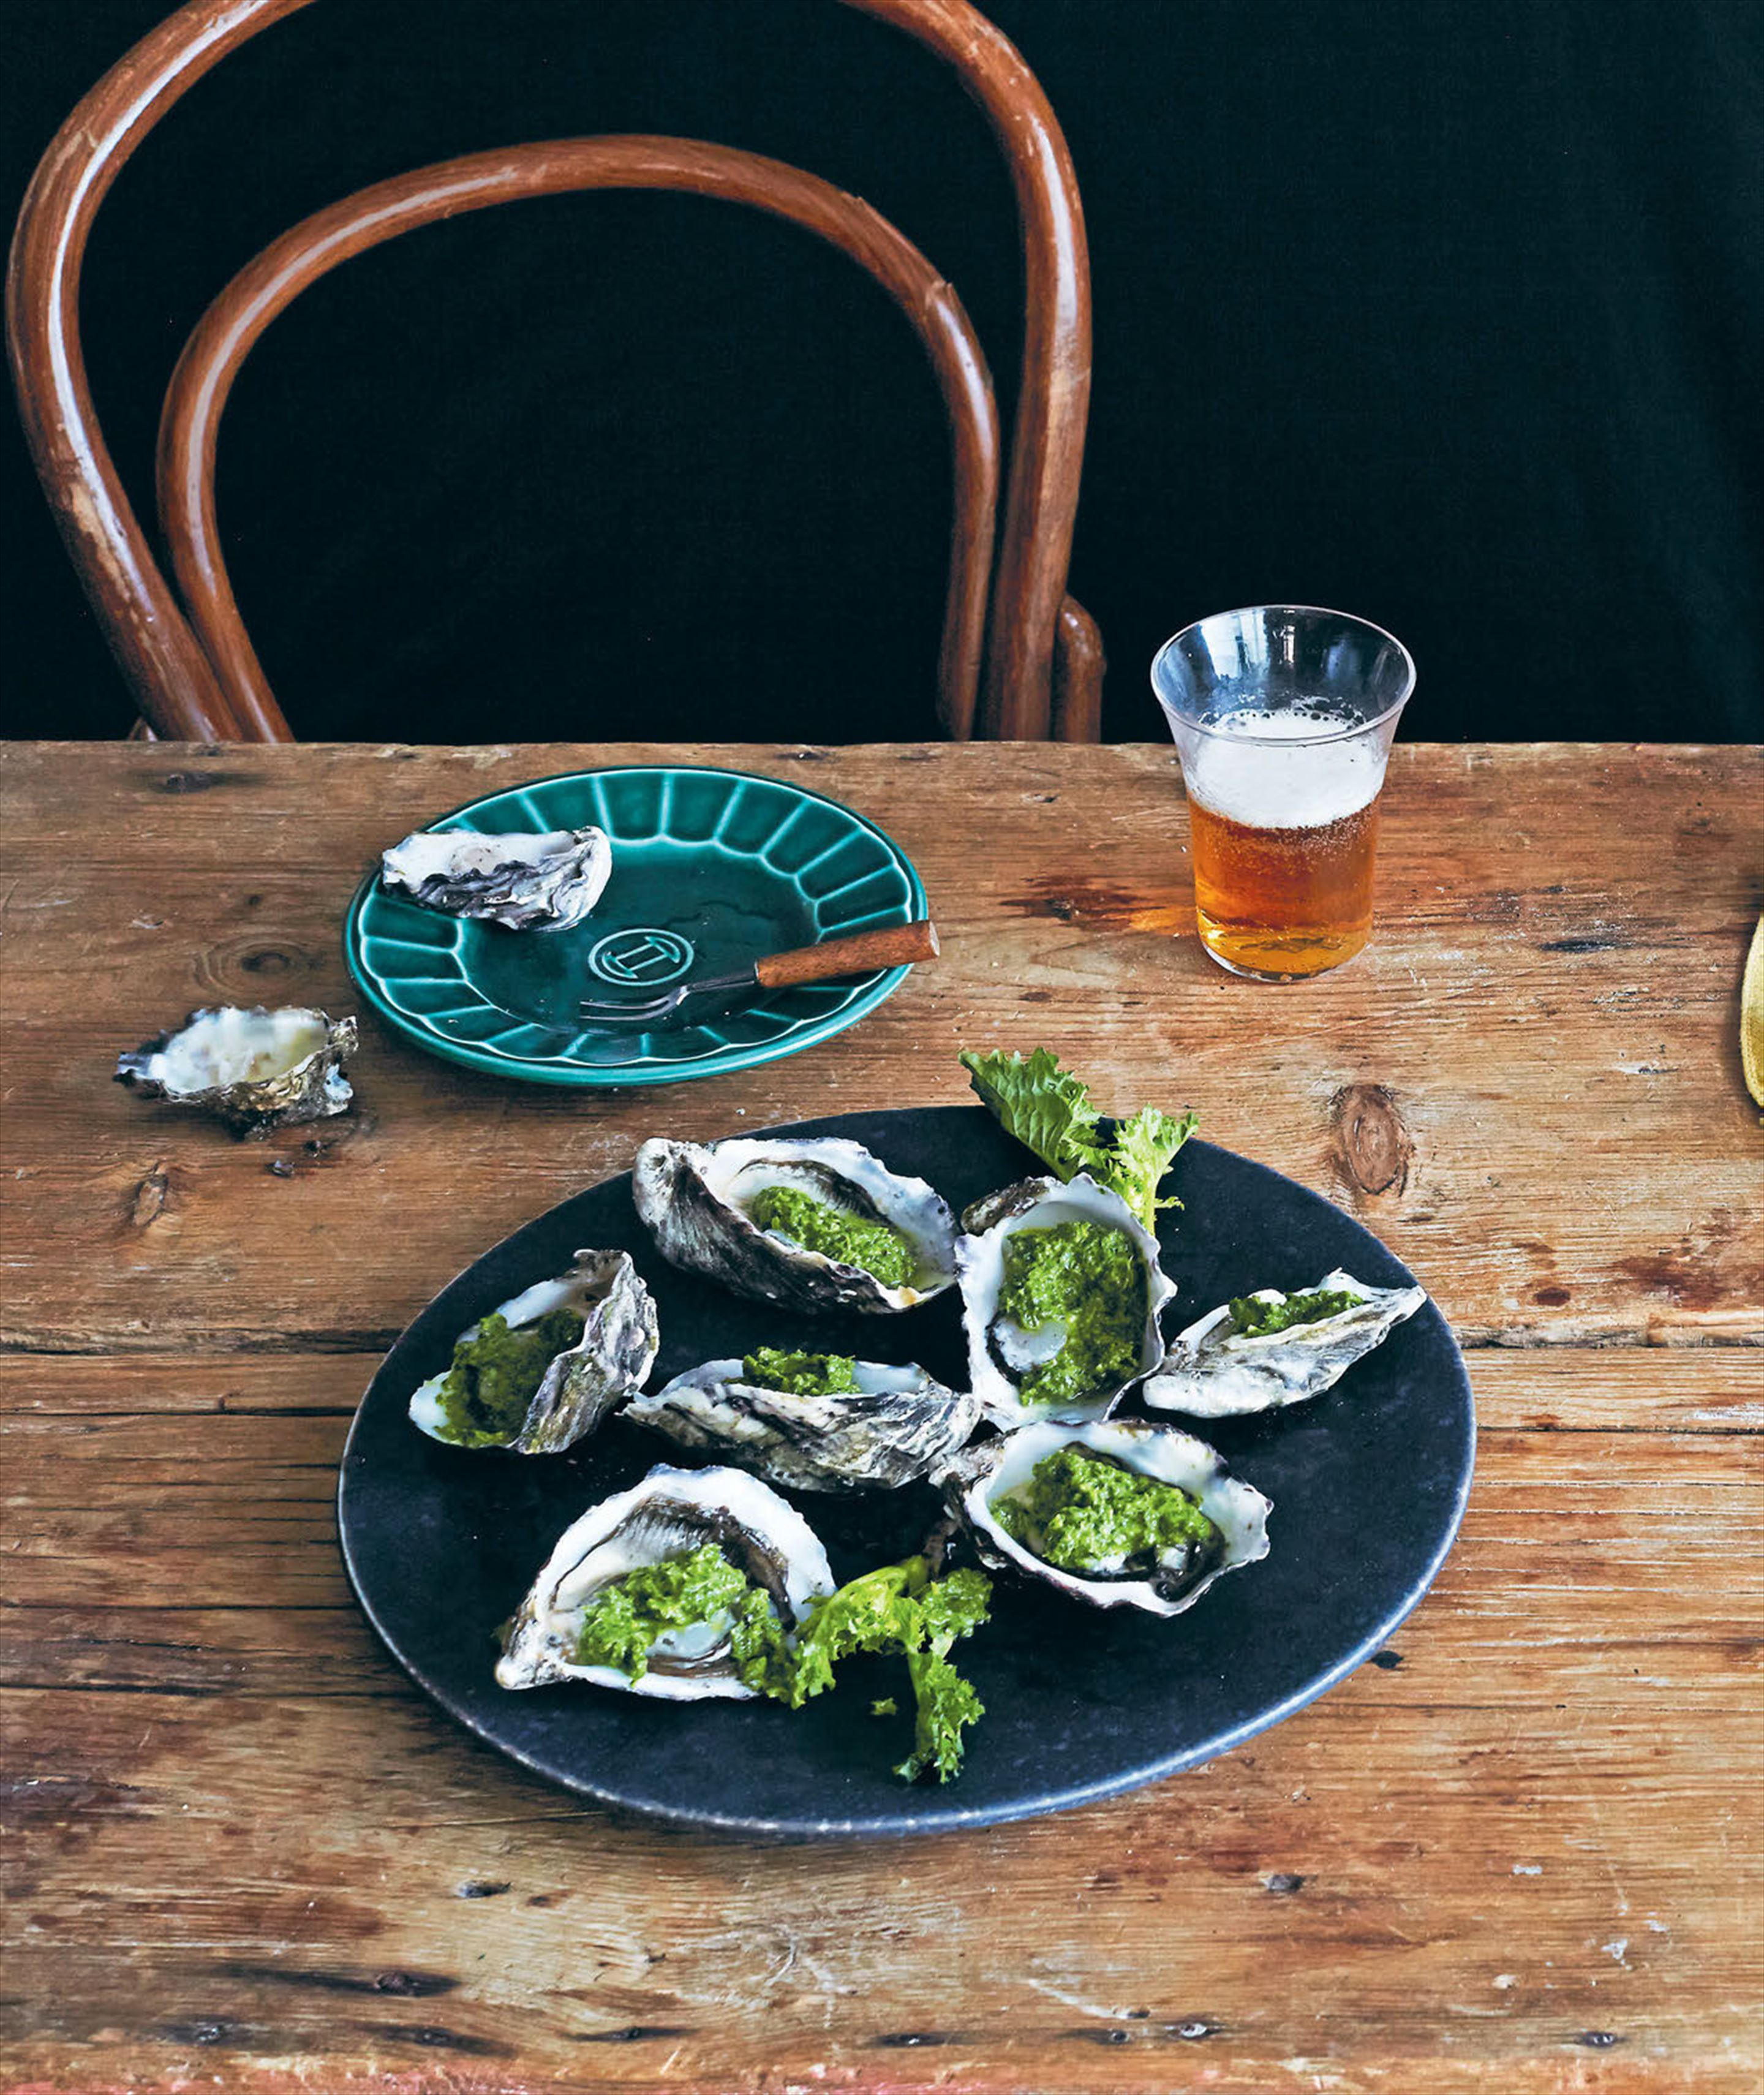 Oysters with broccoli rabe pesto